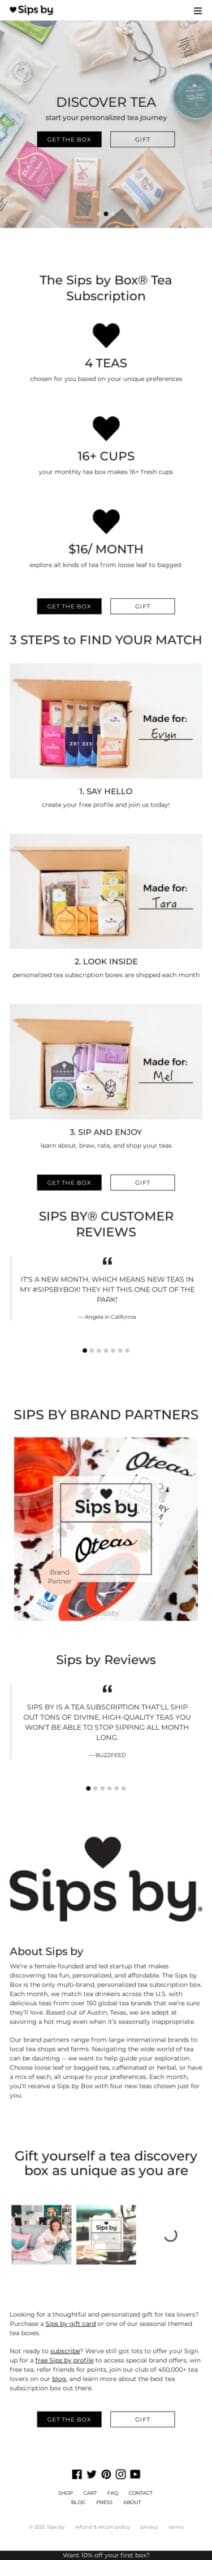 Sips by Coupon